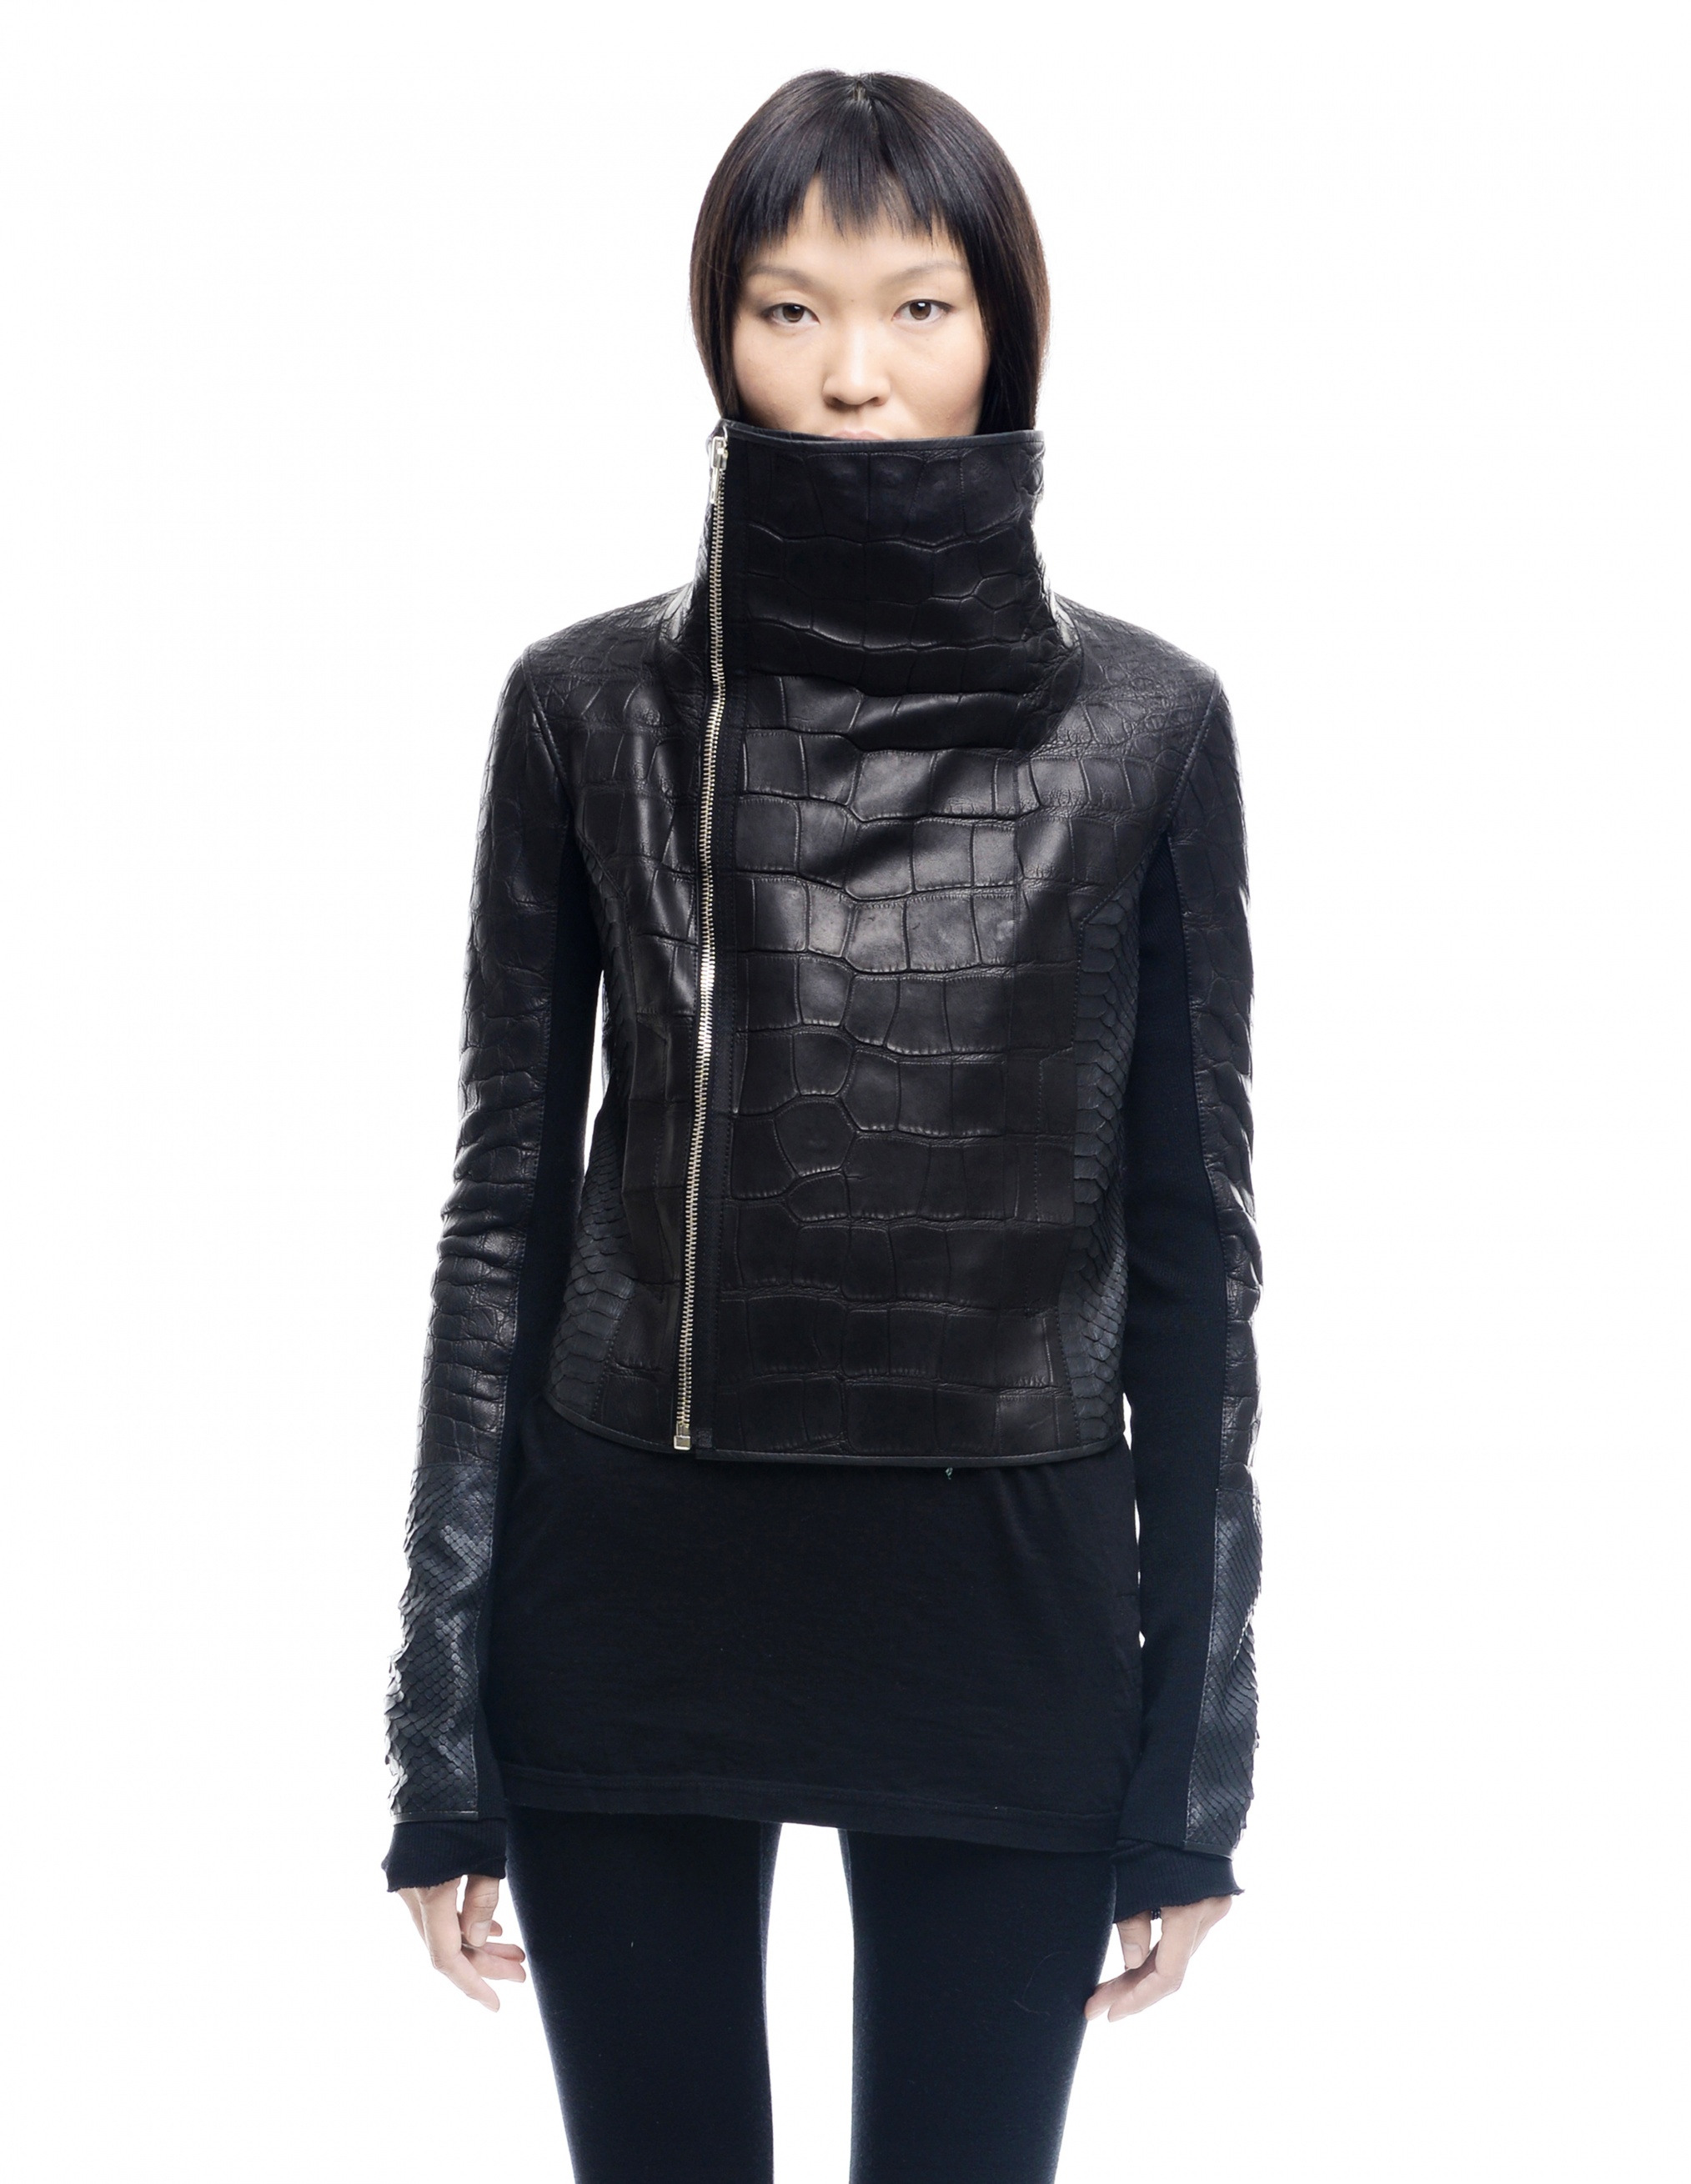 Crocodile and python leather jacket HUN Rick Owens - buy